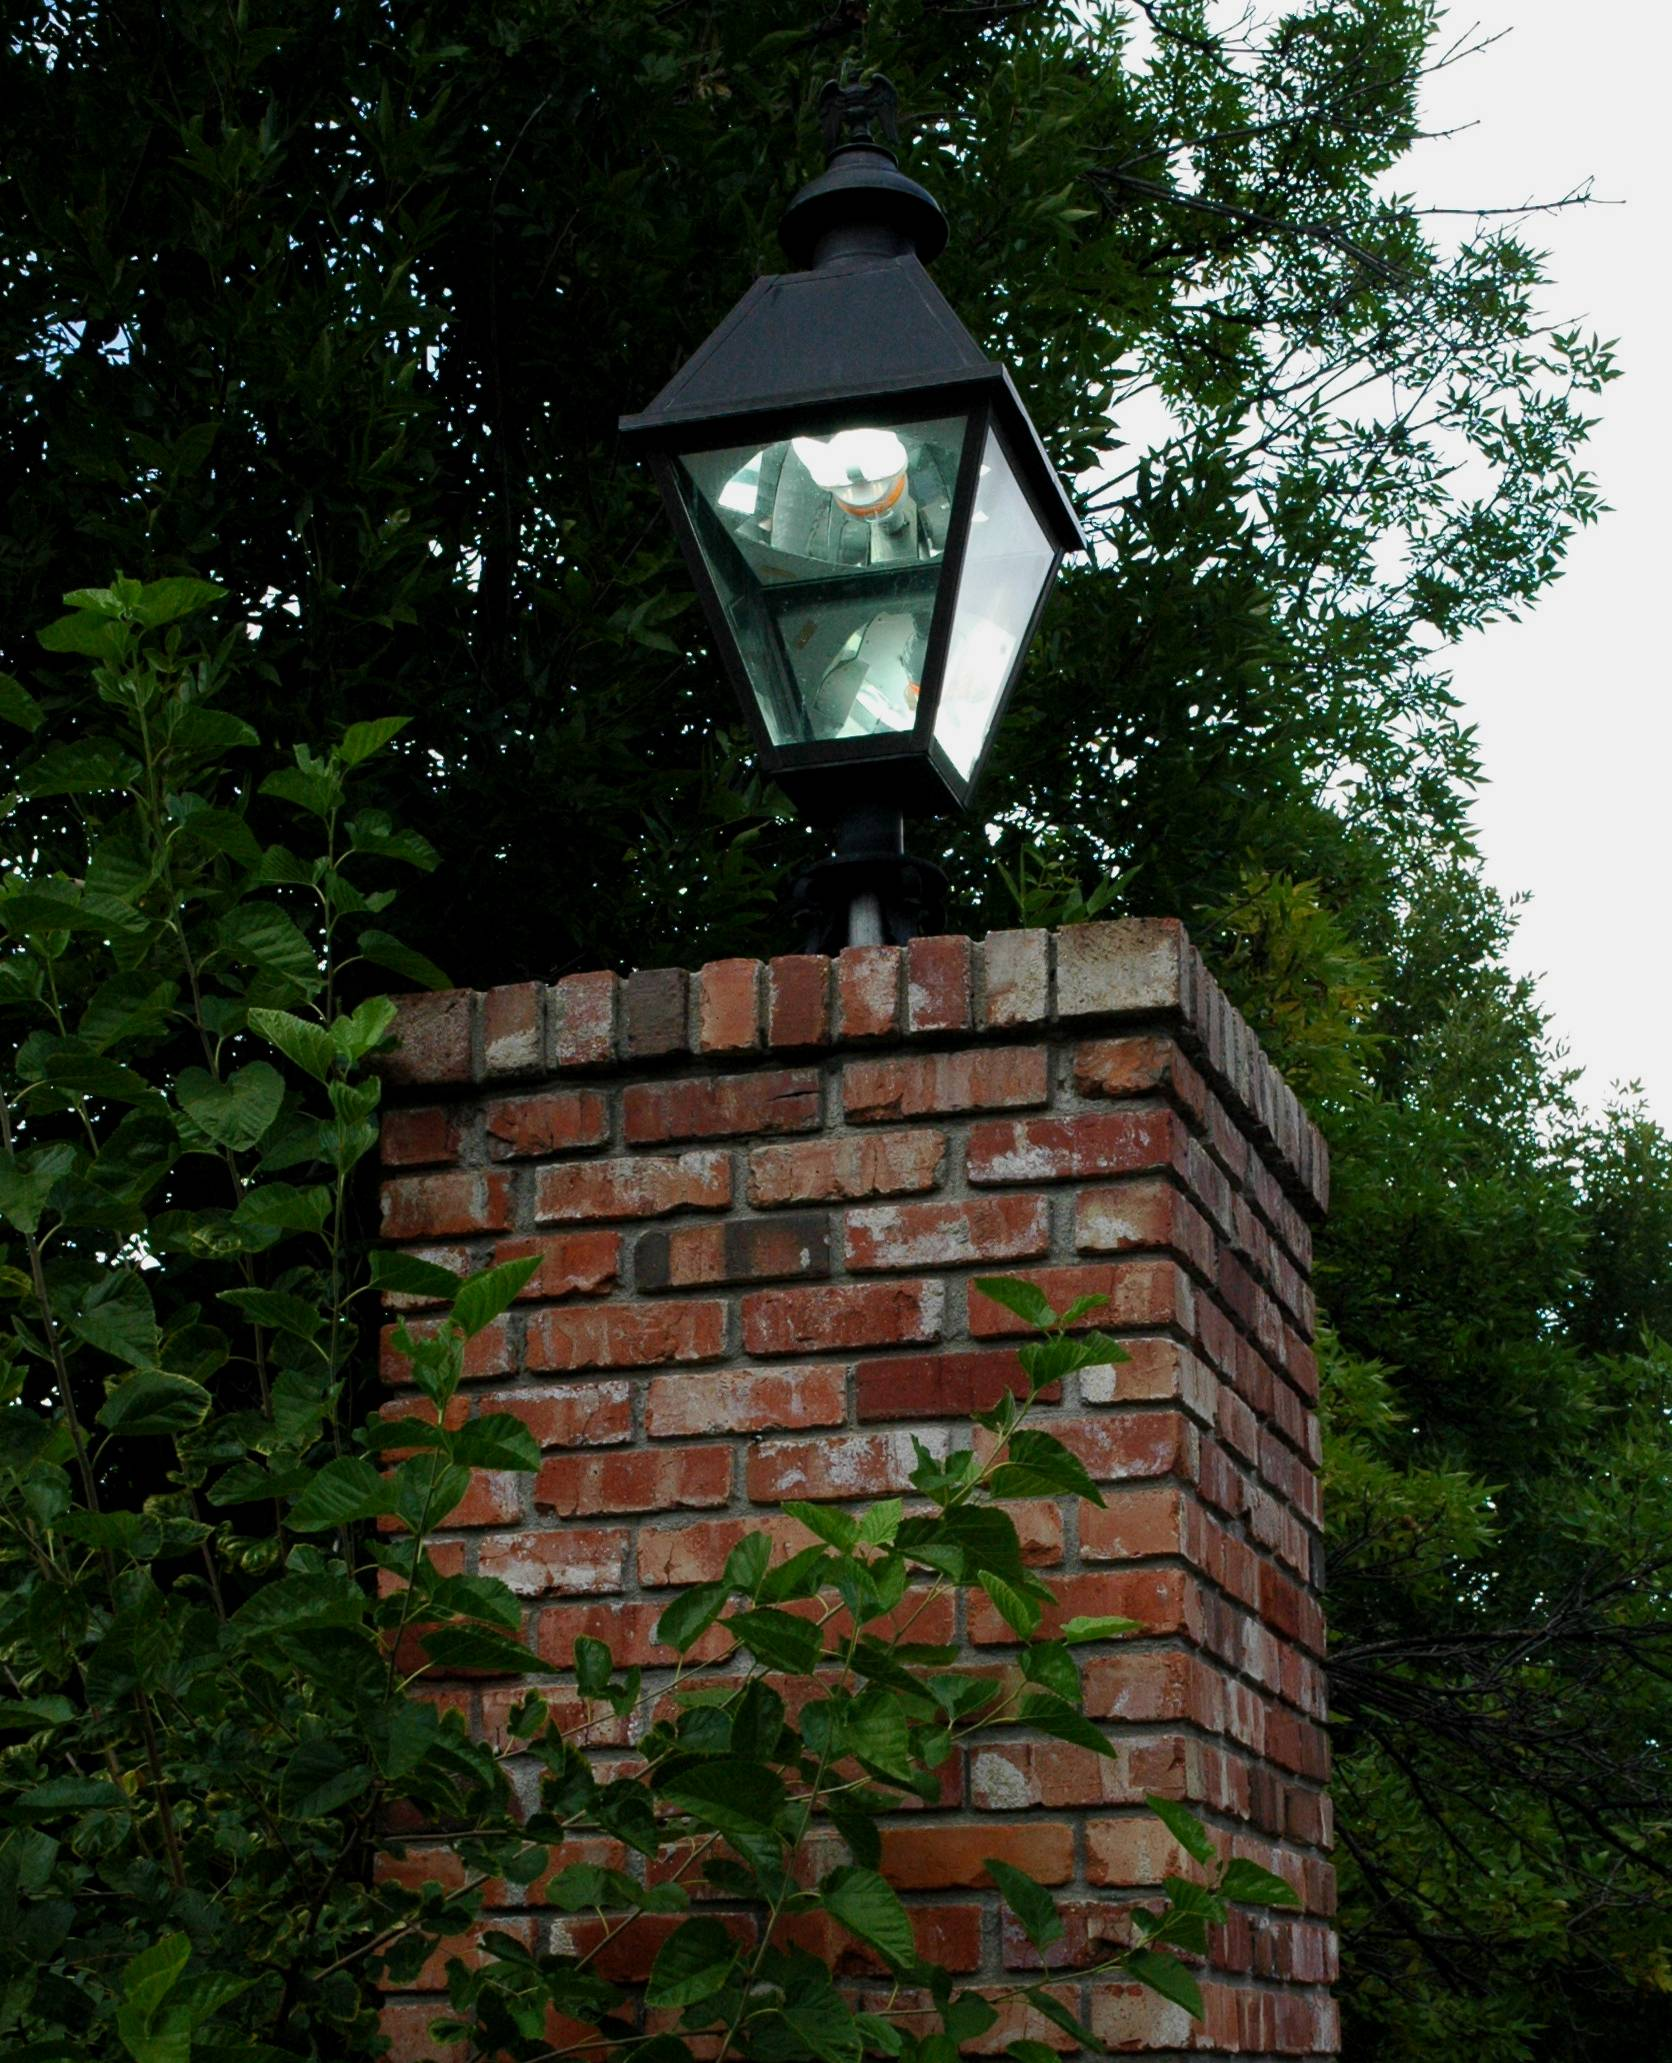 outdoor lighting neighborhood the light category entrance al of gardens tuscaloosa landscape perspectives birmingham blog